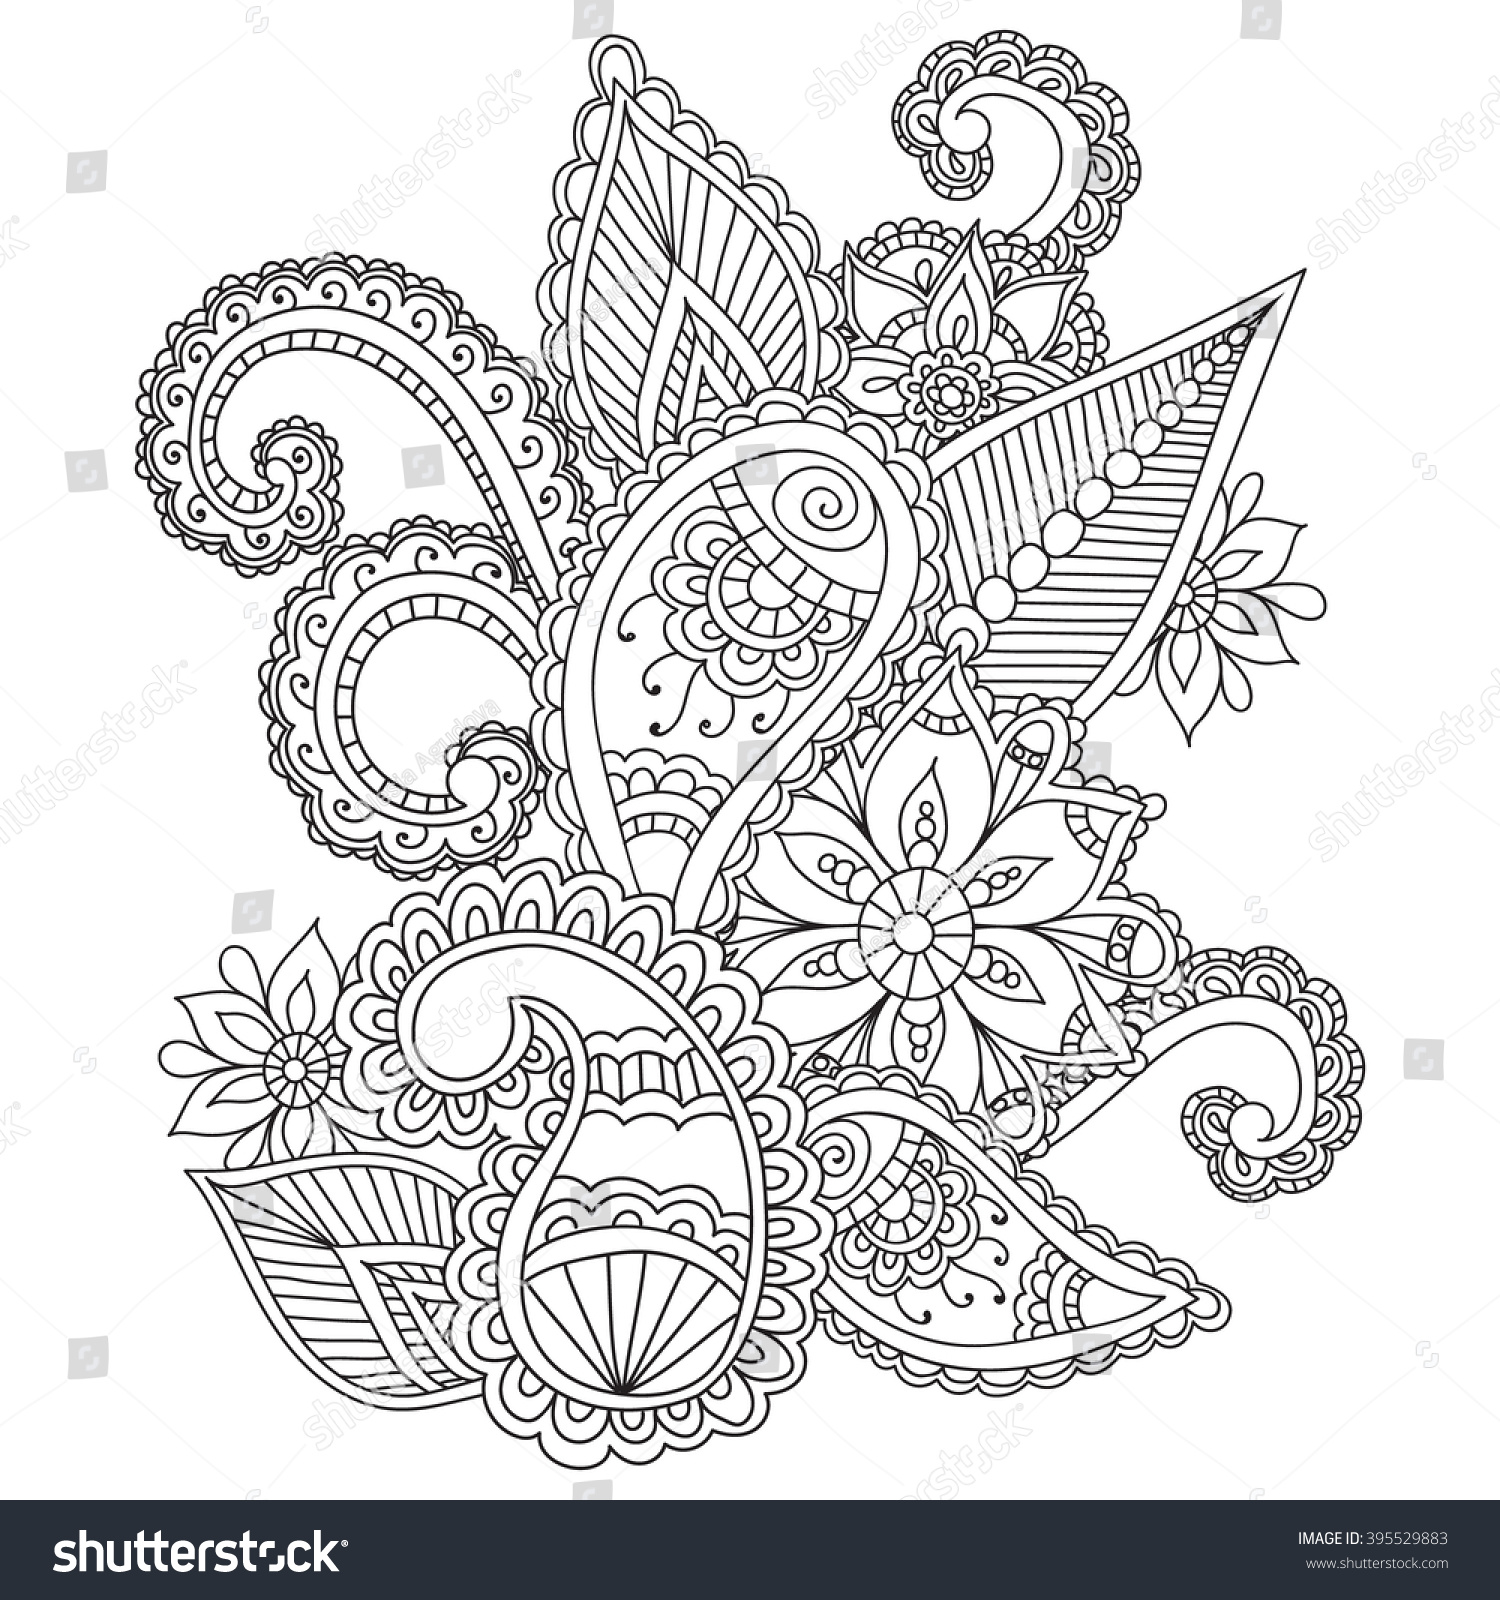 Coloring Pages Adults Henna Mehndi Doodles Stock Vector (Royalty ...